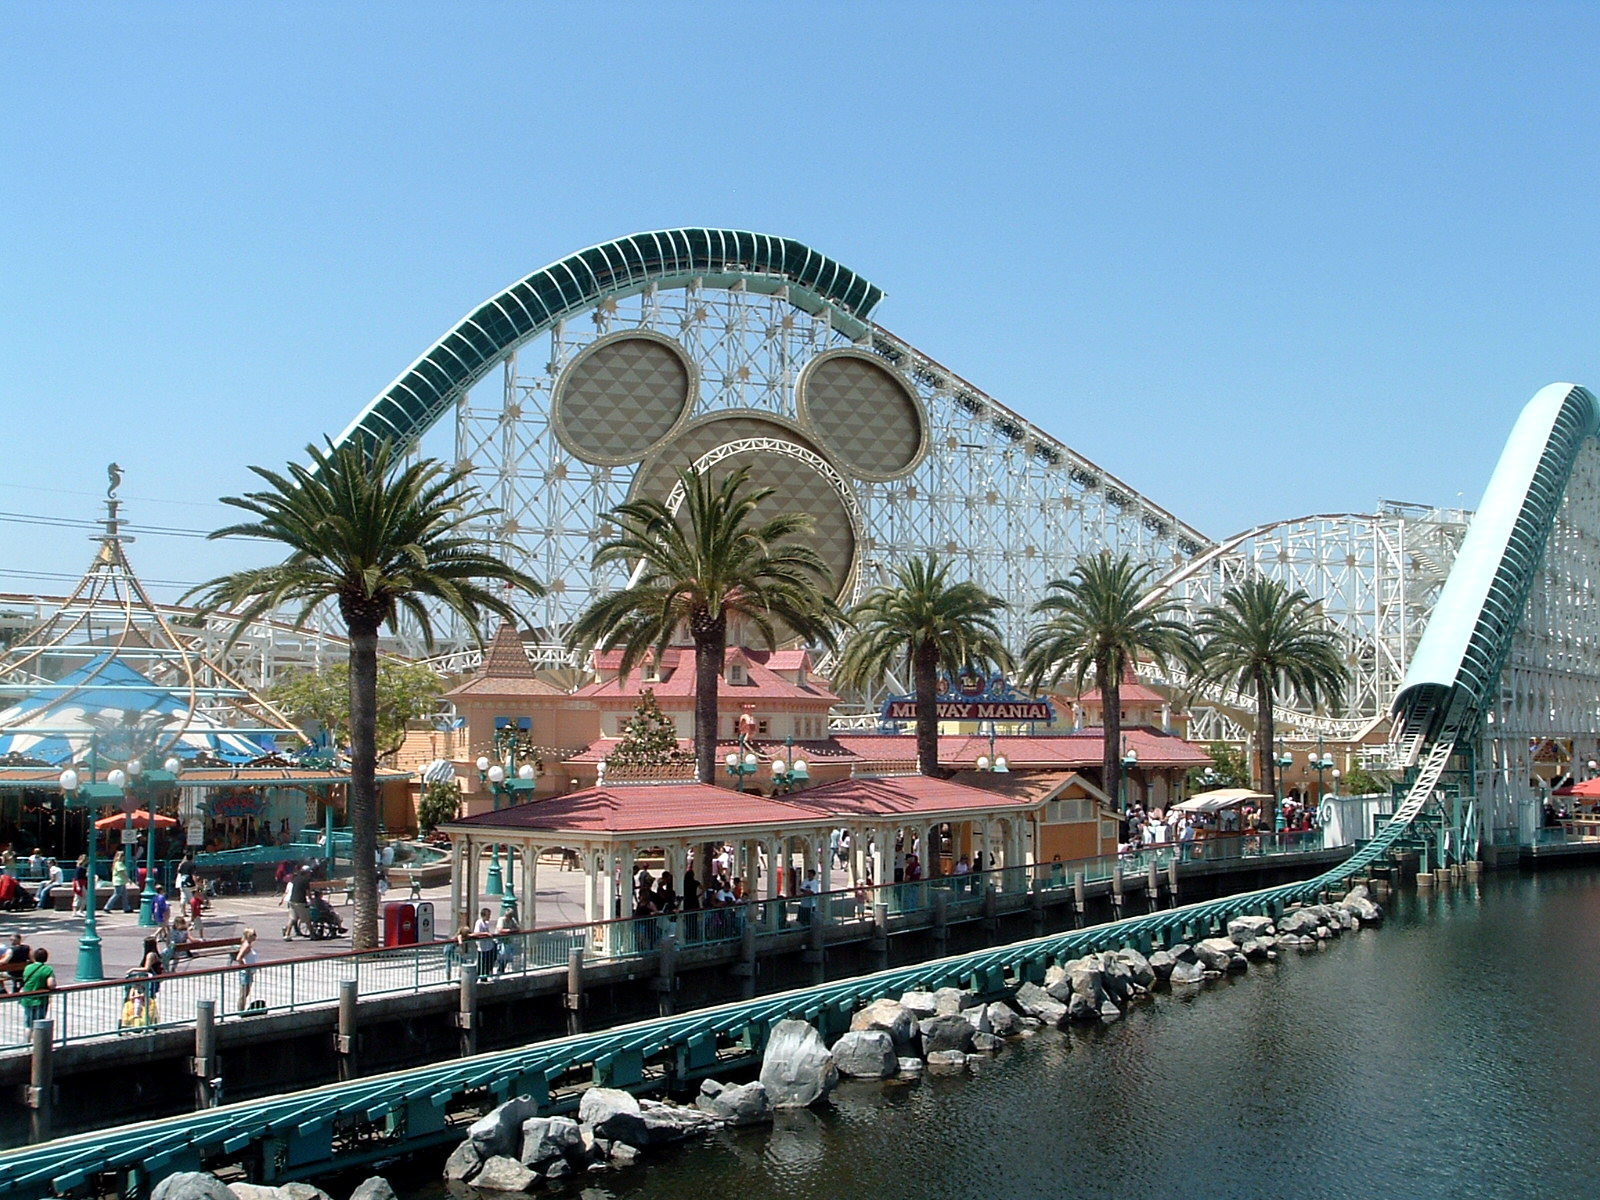 California Screamin' w Disney California Adventure